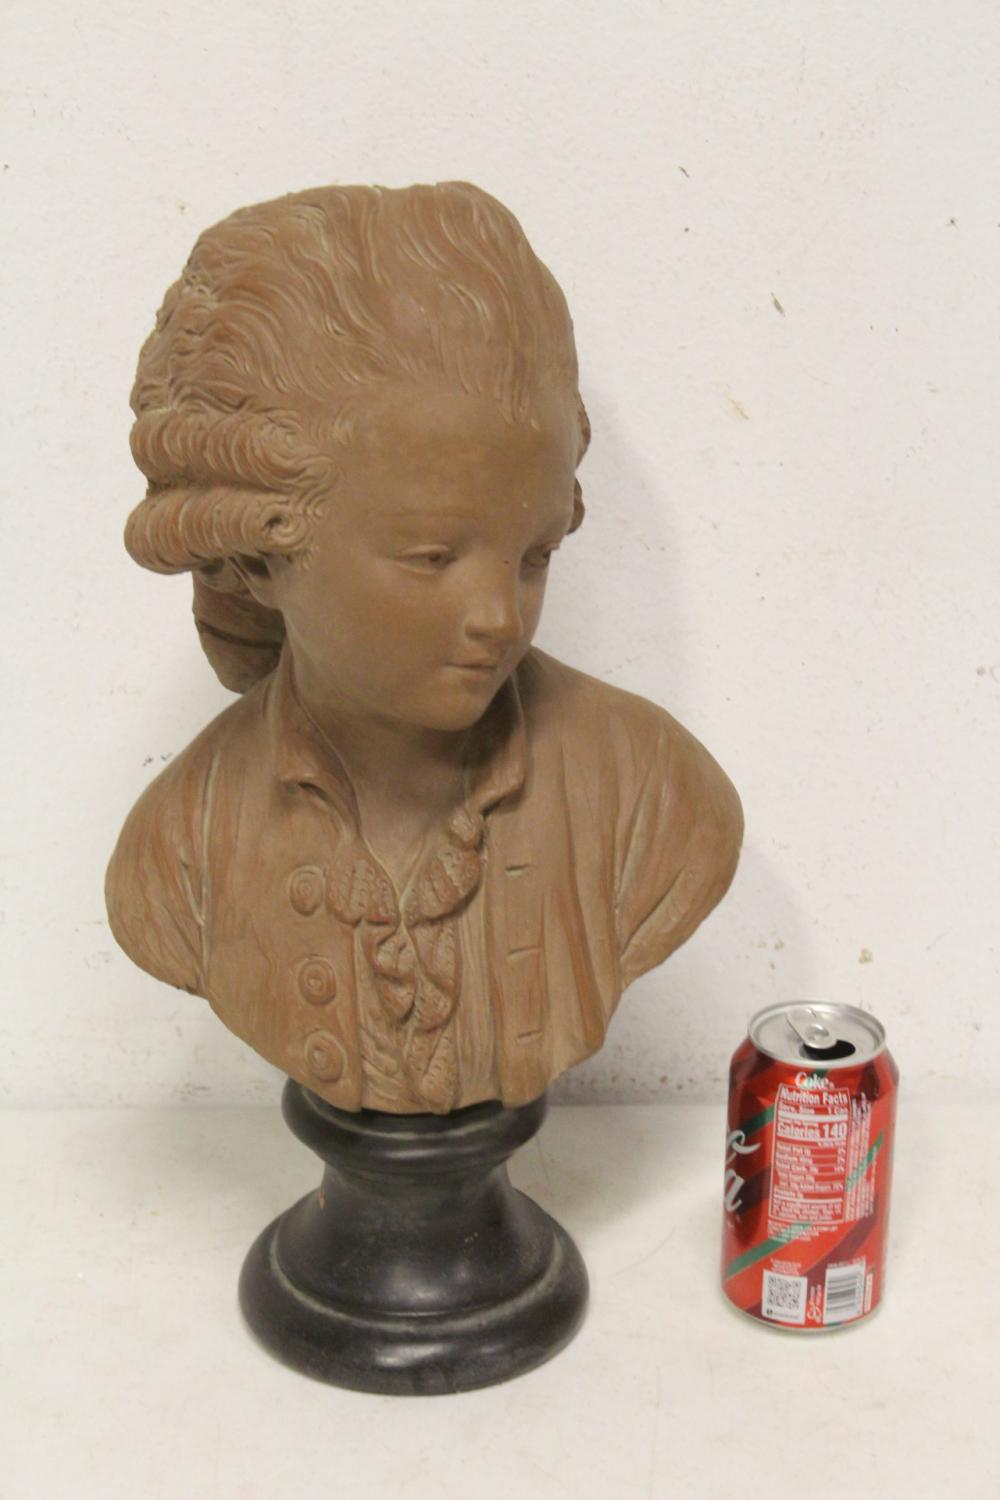 A pottery/bisque sculpture to depict bust of boy